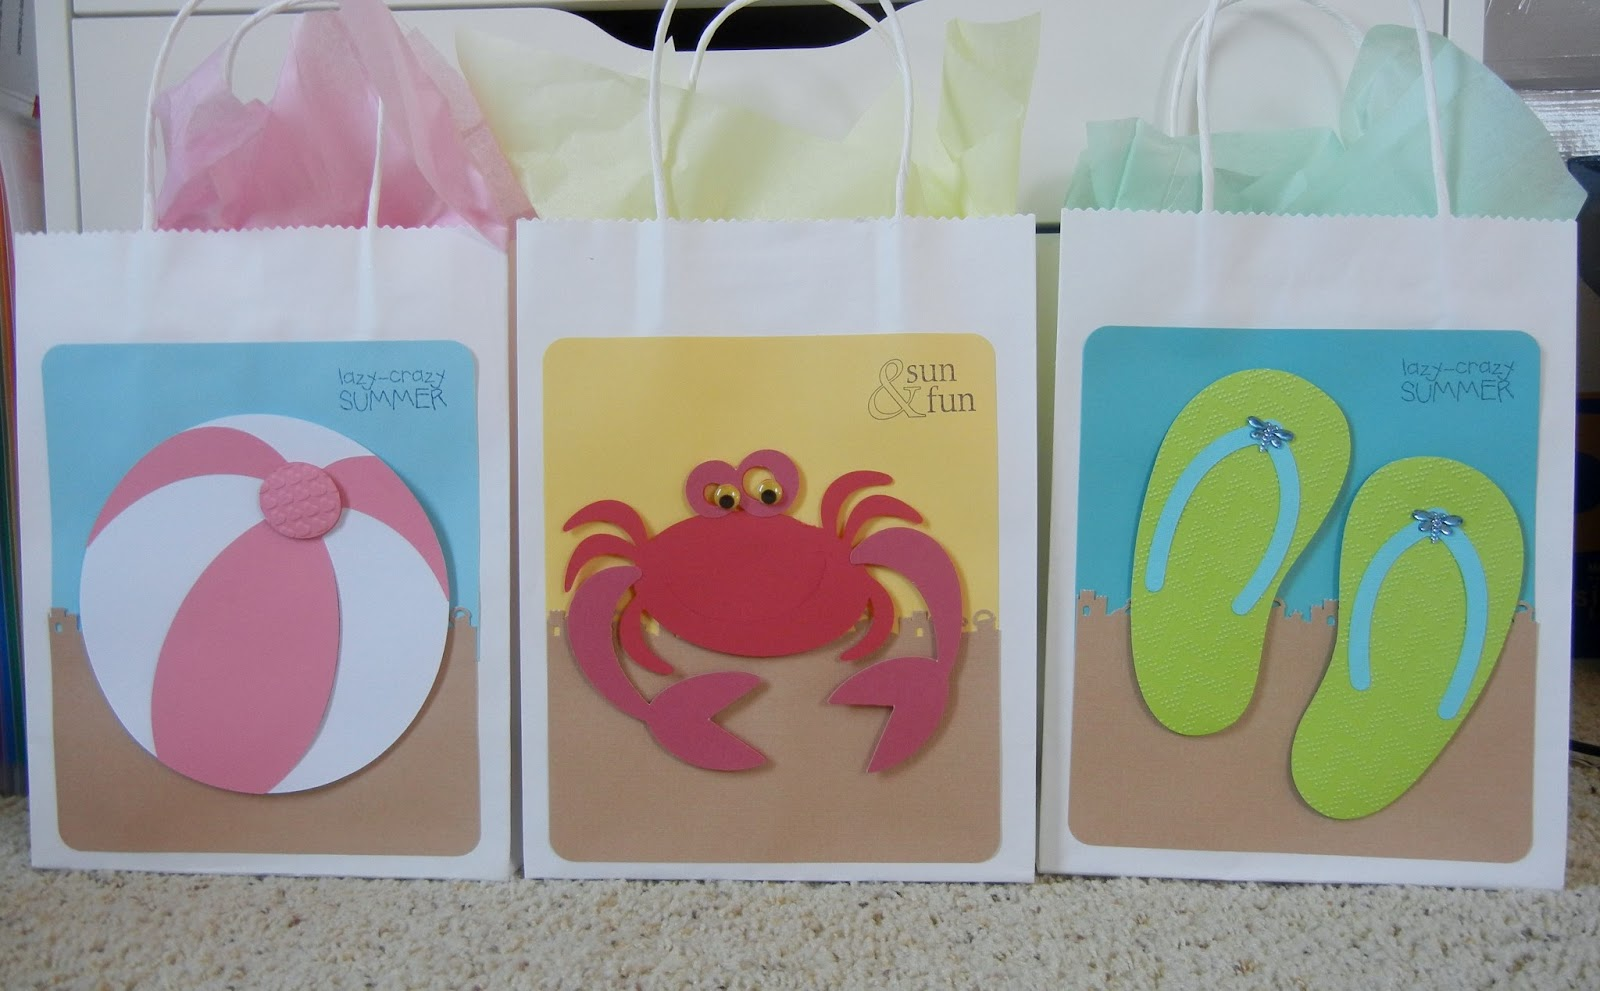 My cricut craft room august 2013 for Cricut craft room download